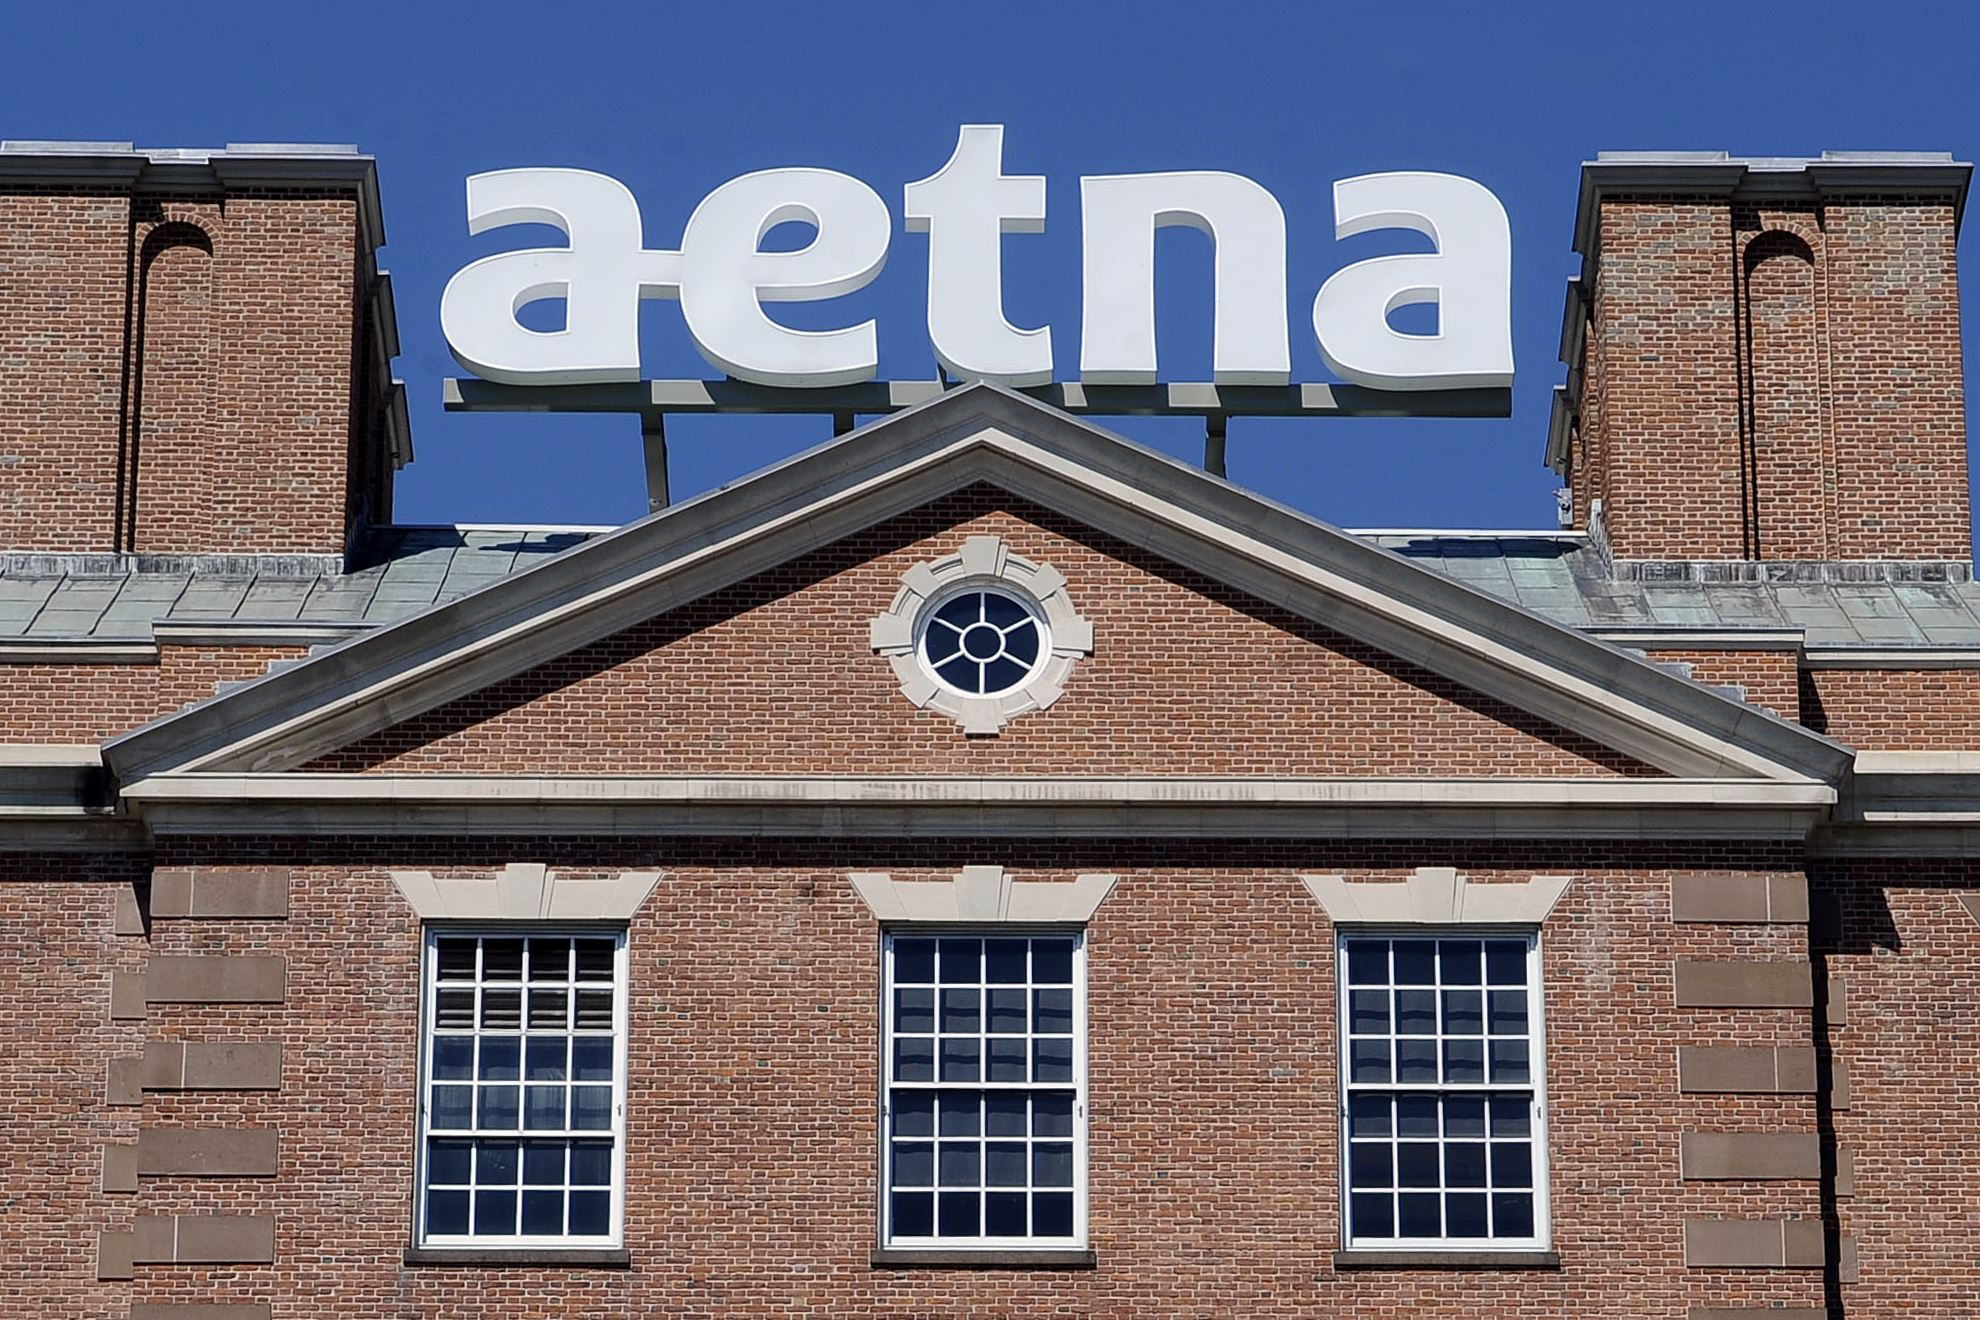 Is cialis covered by aetna insurance